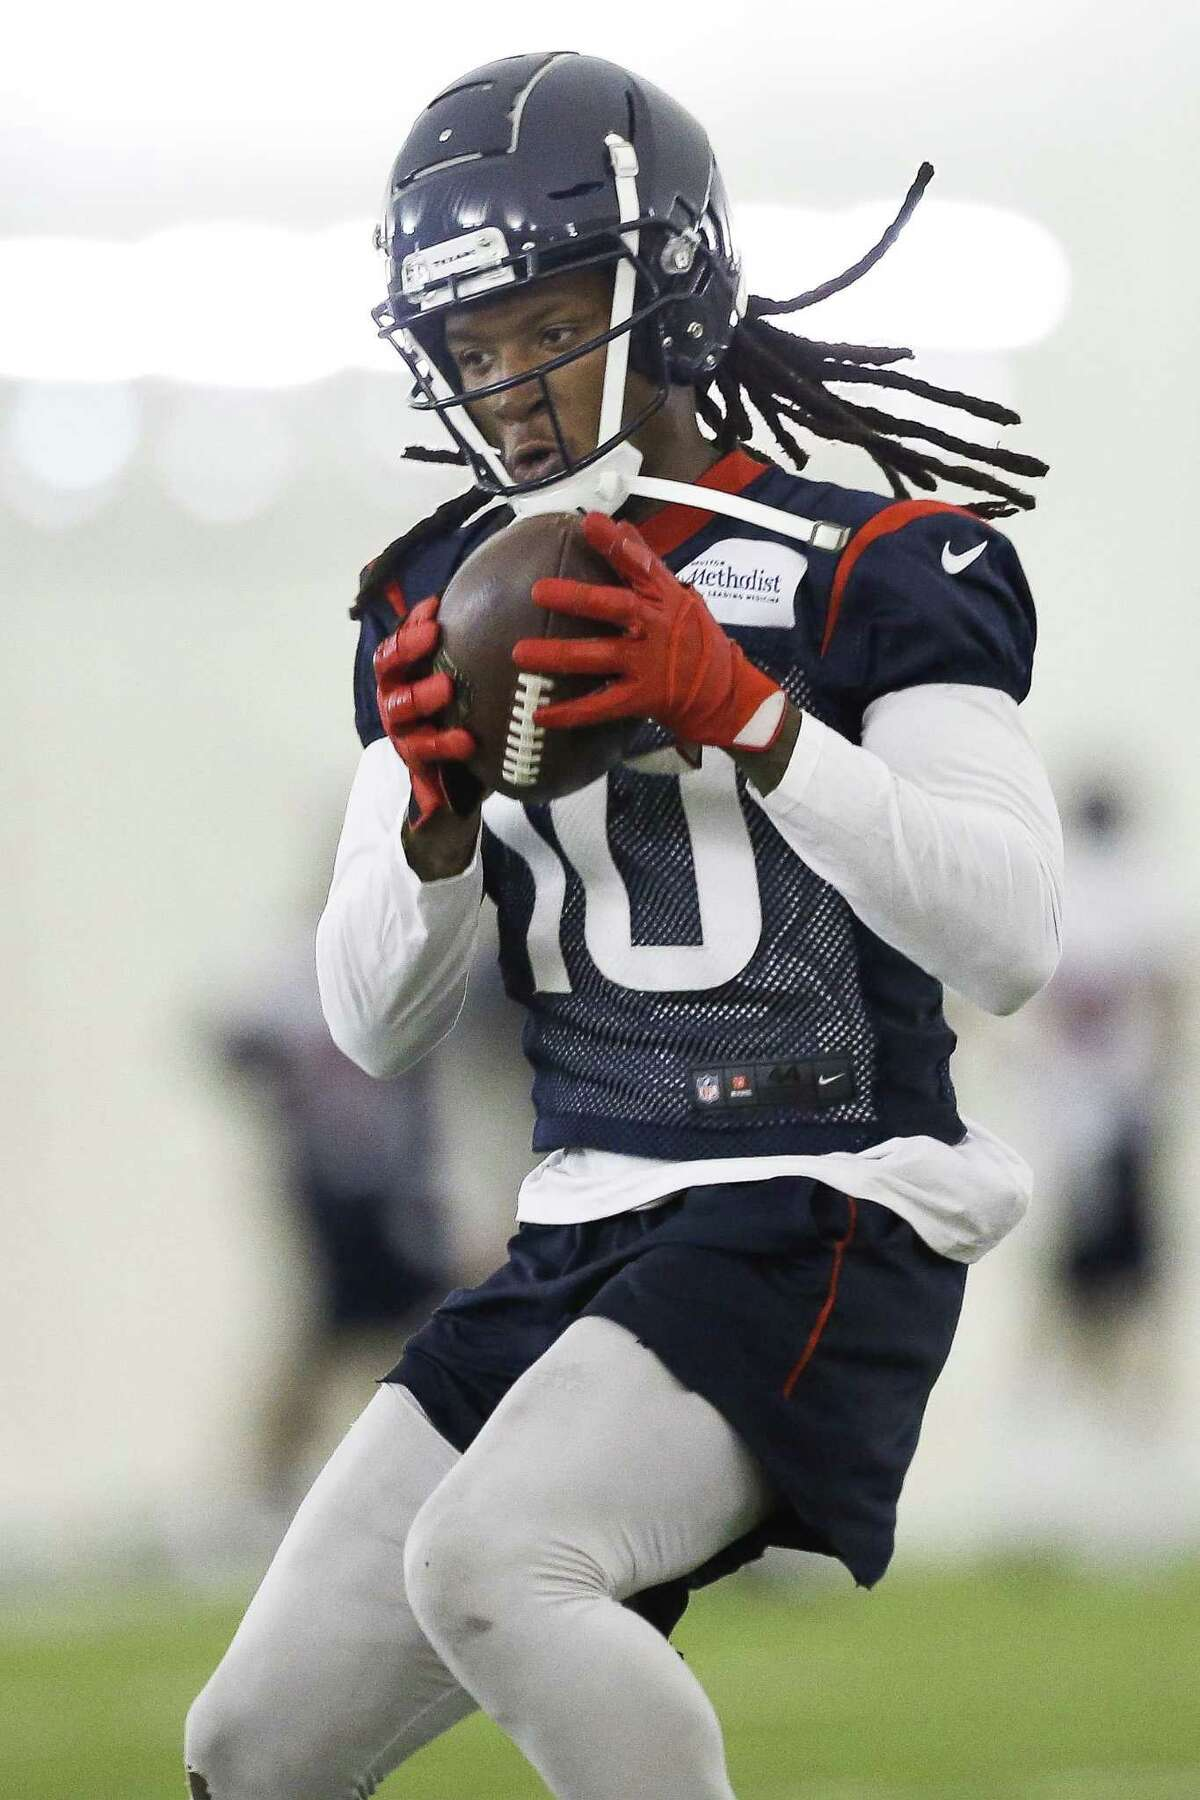 Houston Texans wide receiver DeAndre Hopkins (10) catches a pass while running through drills at the Texans Practice Facility Wednesday, May 30, 2018 in Houston. (Michael Ciaglo / Houston Chronicle)